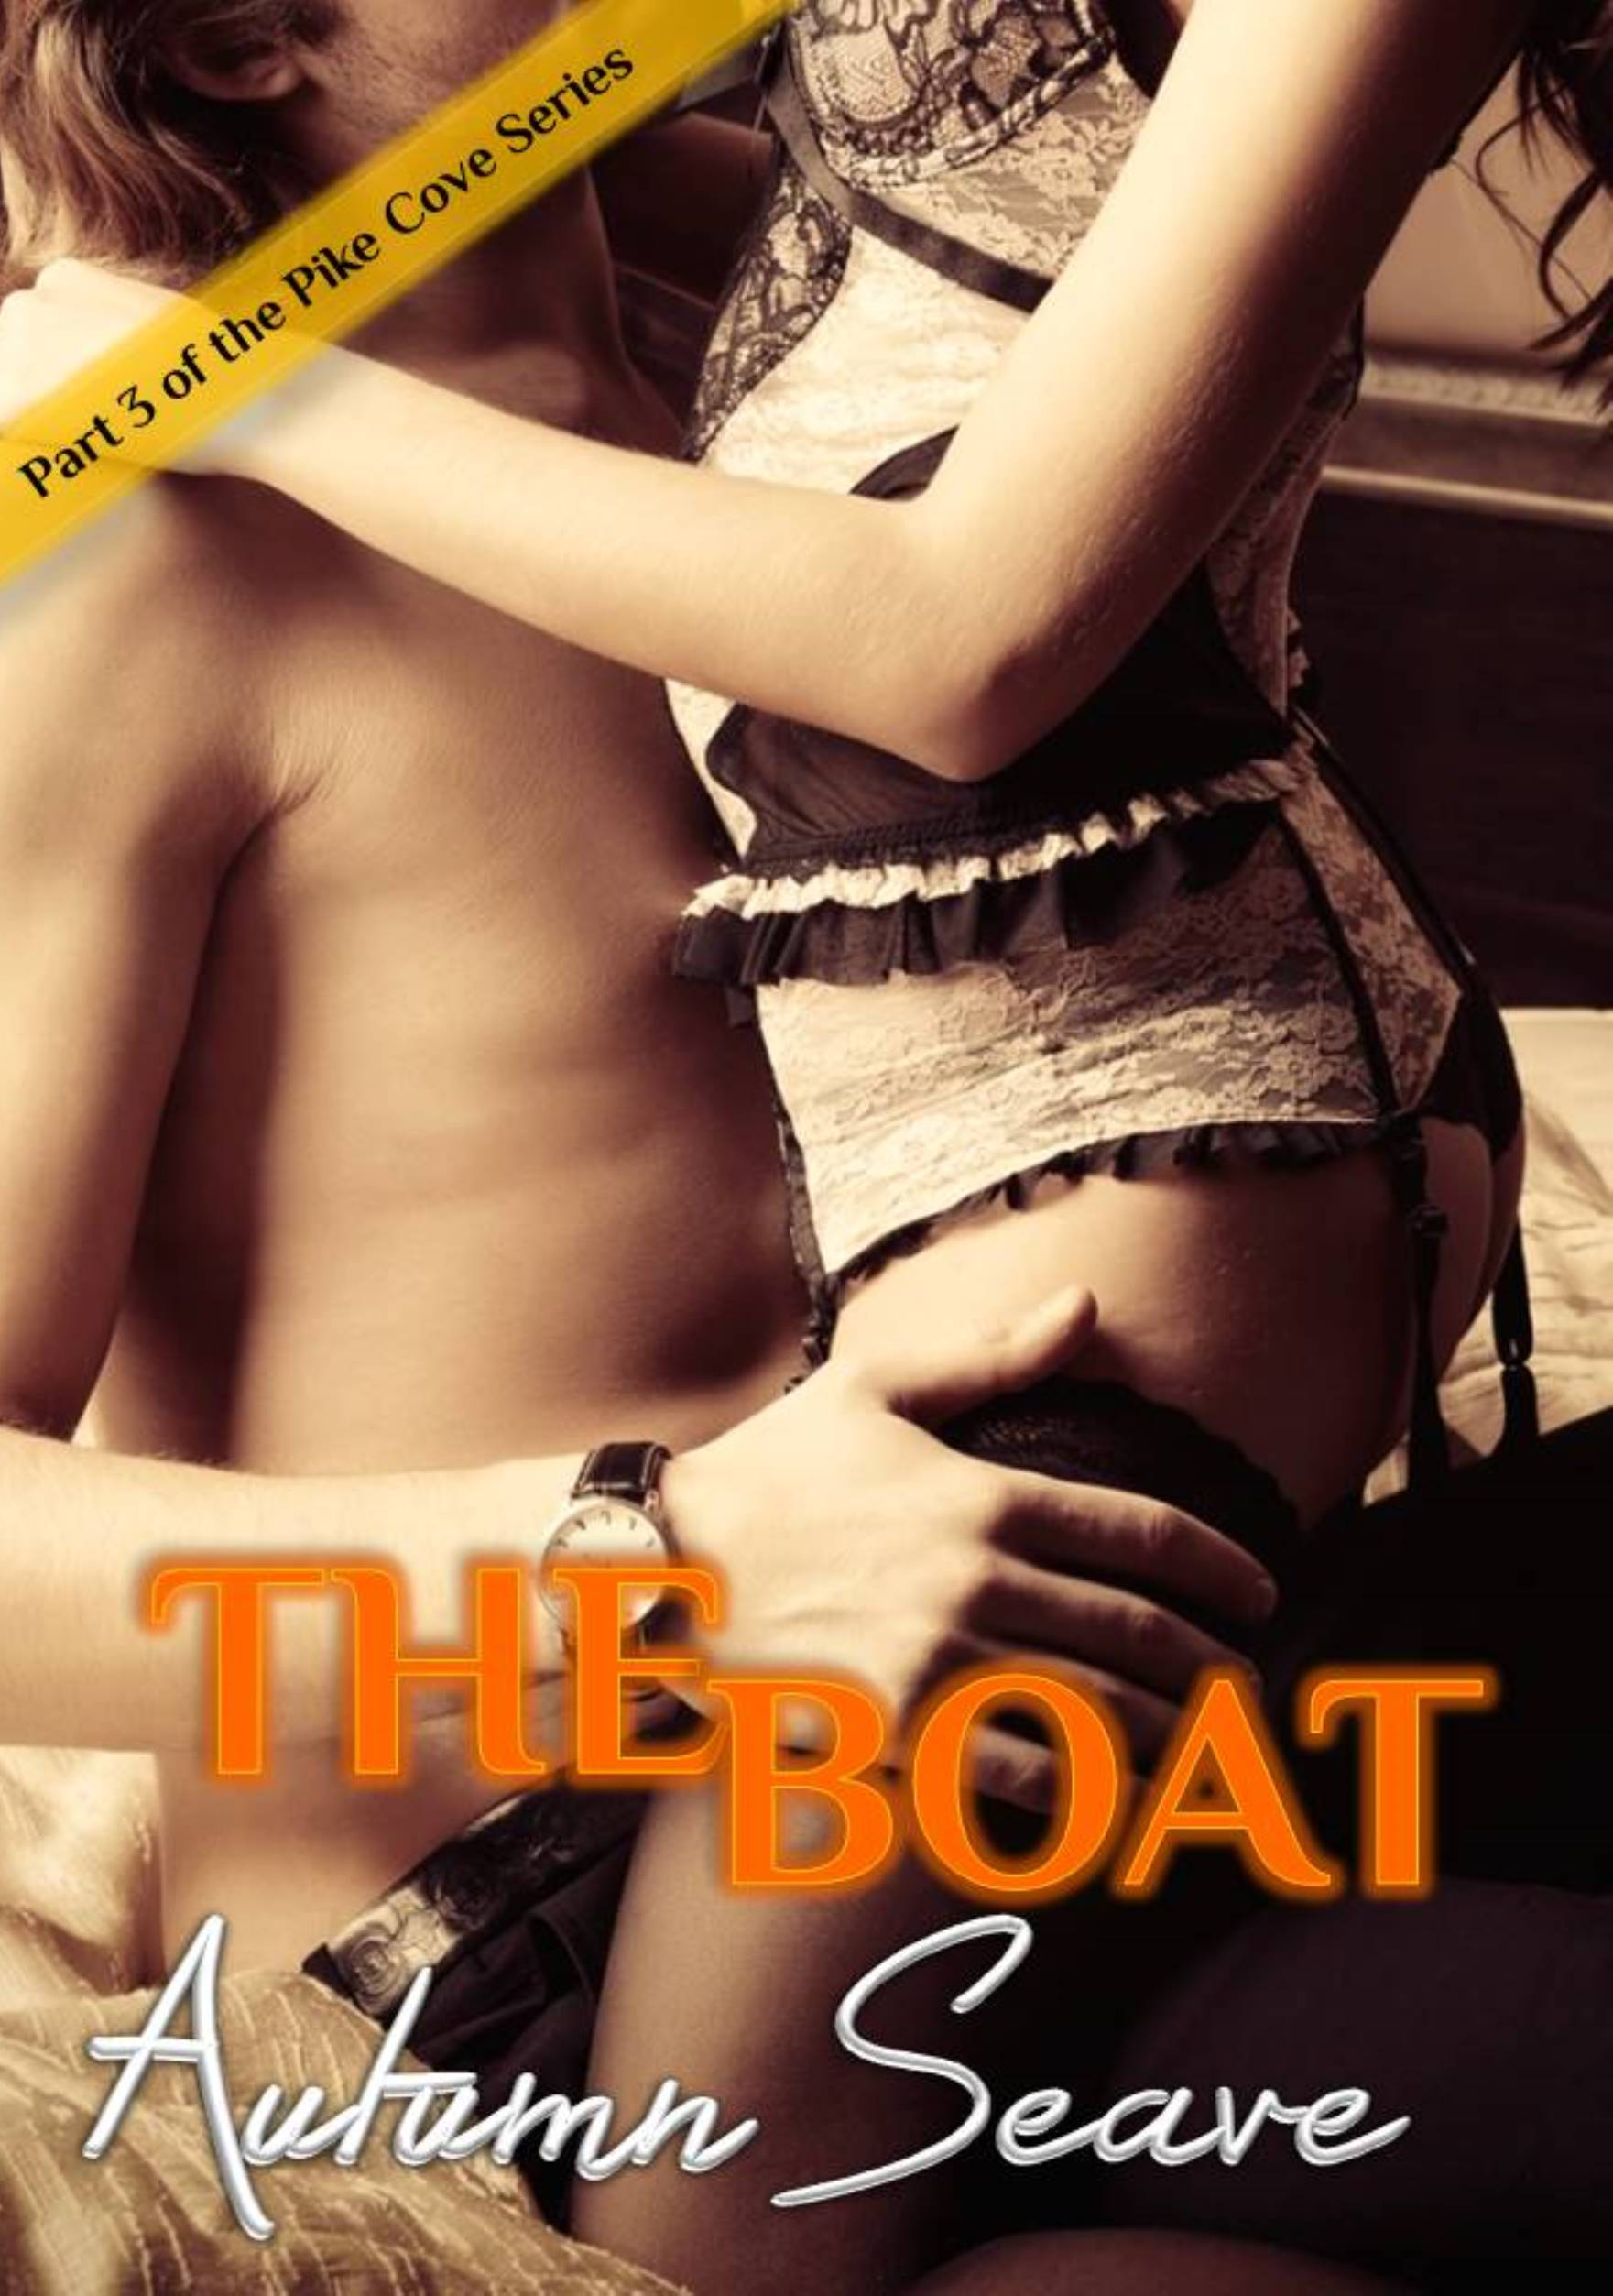 New Release: The Boat – Part 3 of the Pike Cove series